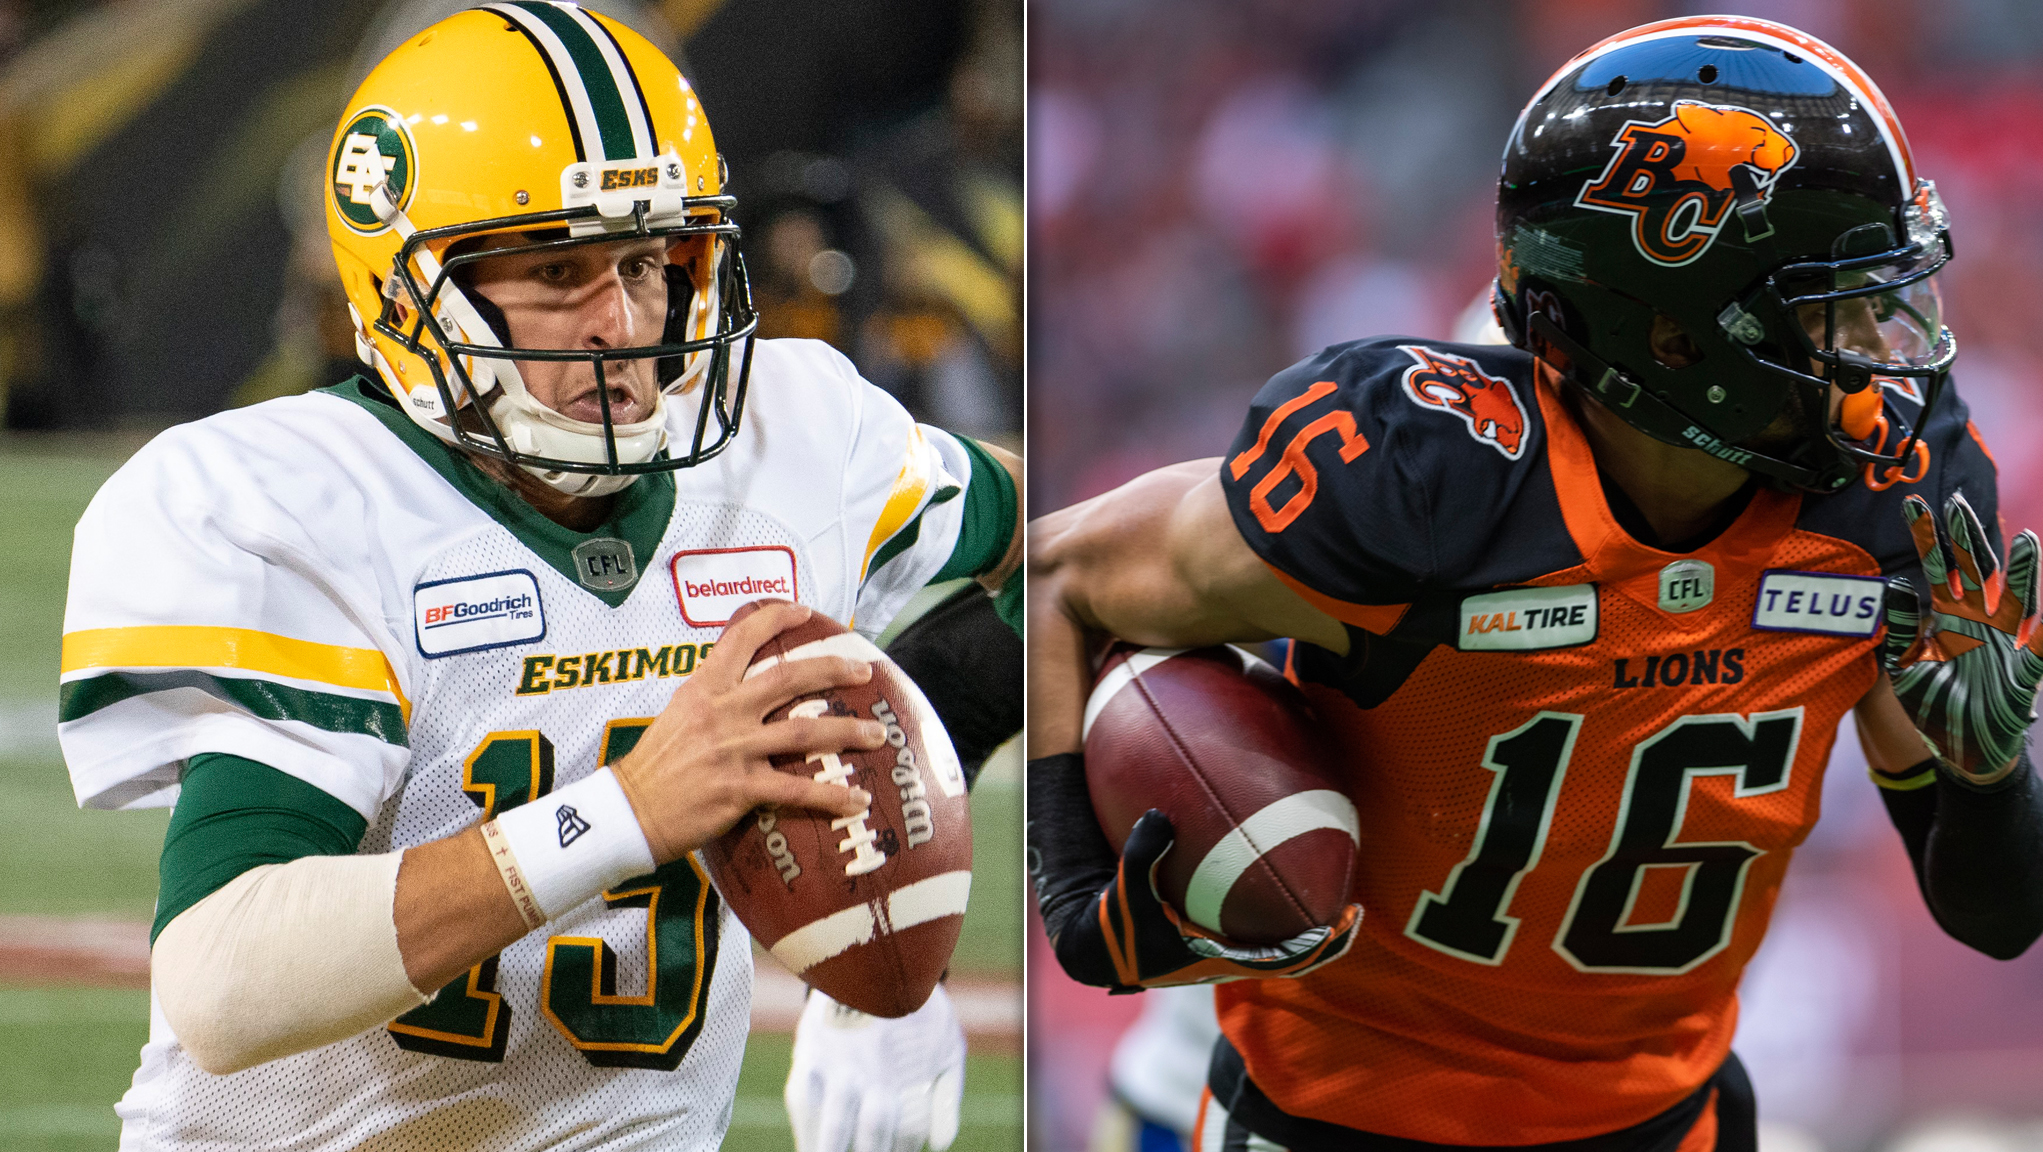 Lions put playoff hopes on the line in Edmonton - CFL.ca